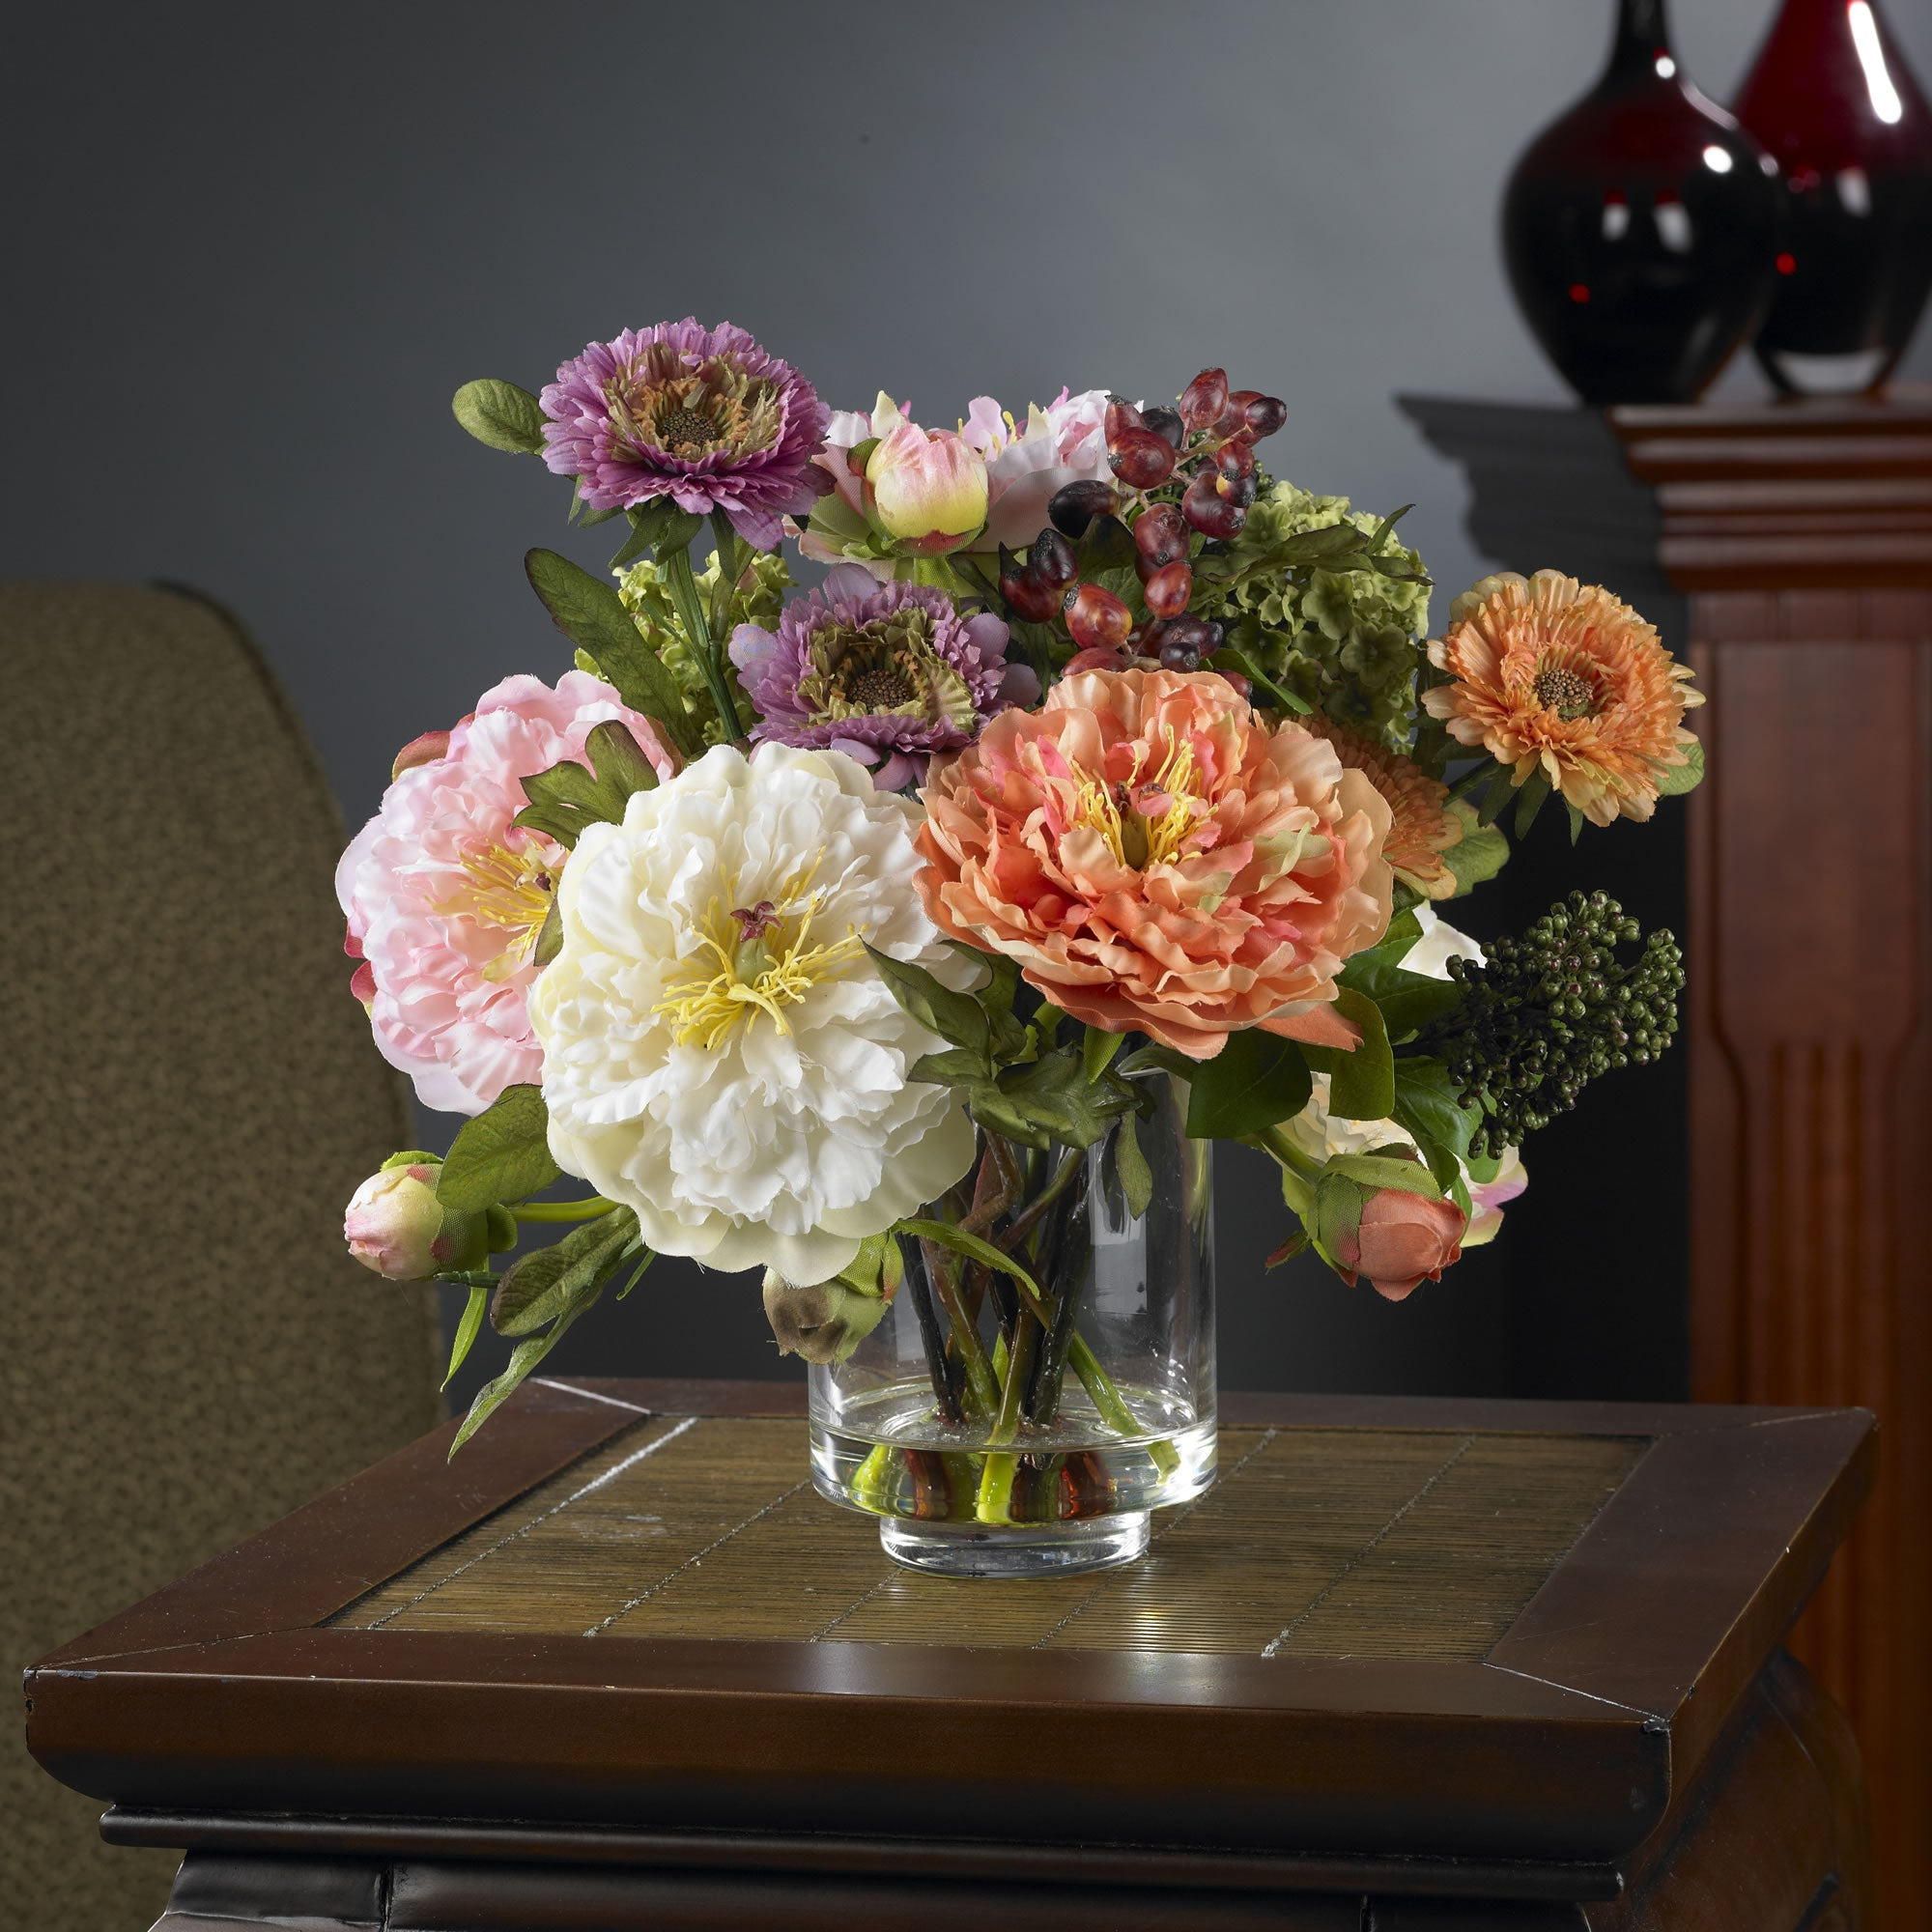 a glass vase of brightly colored peonies